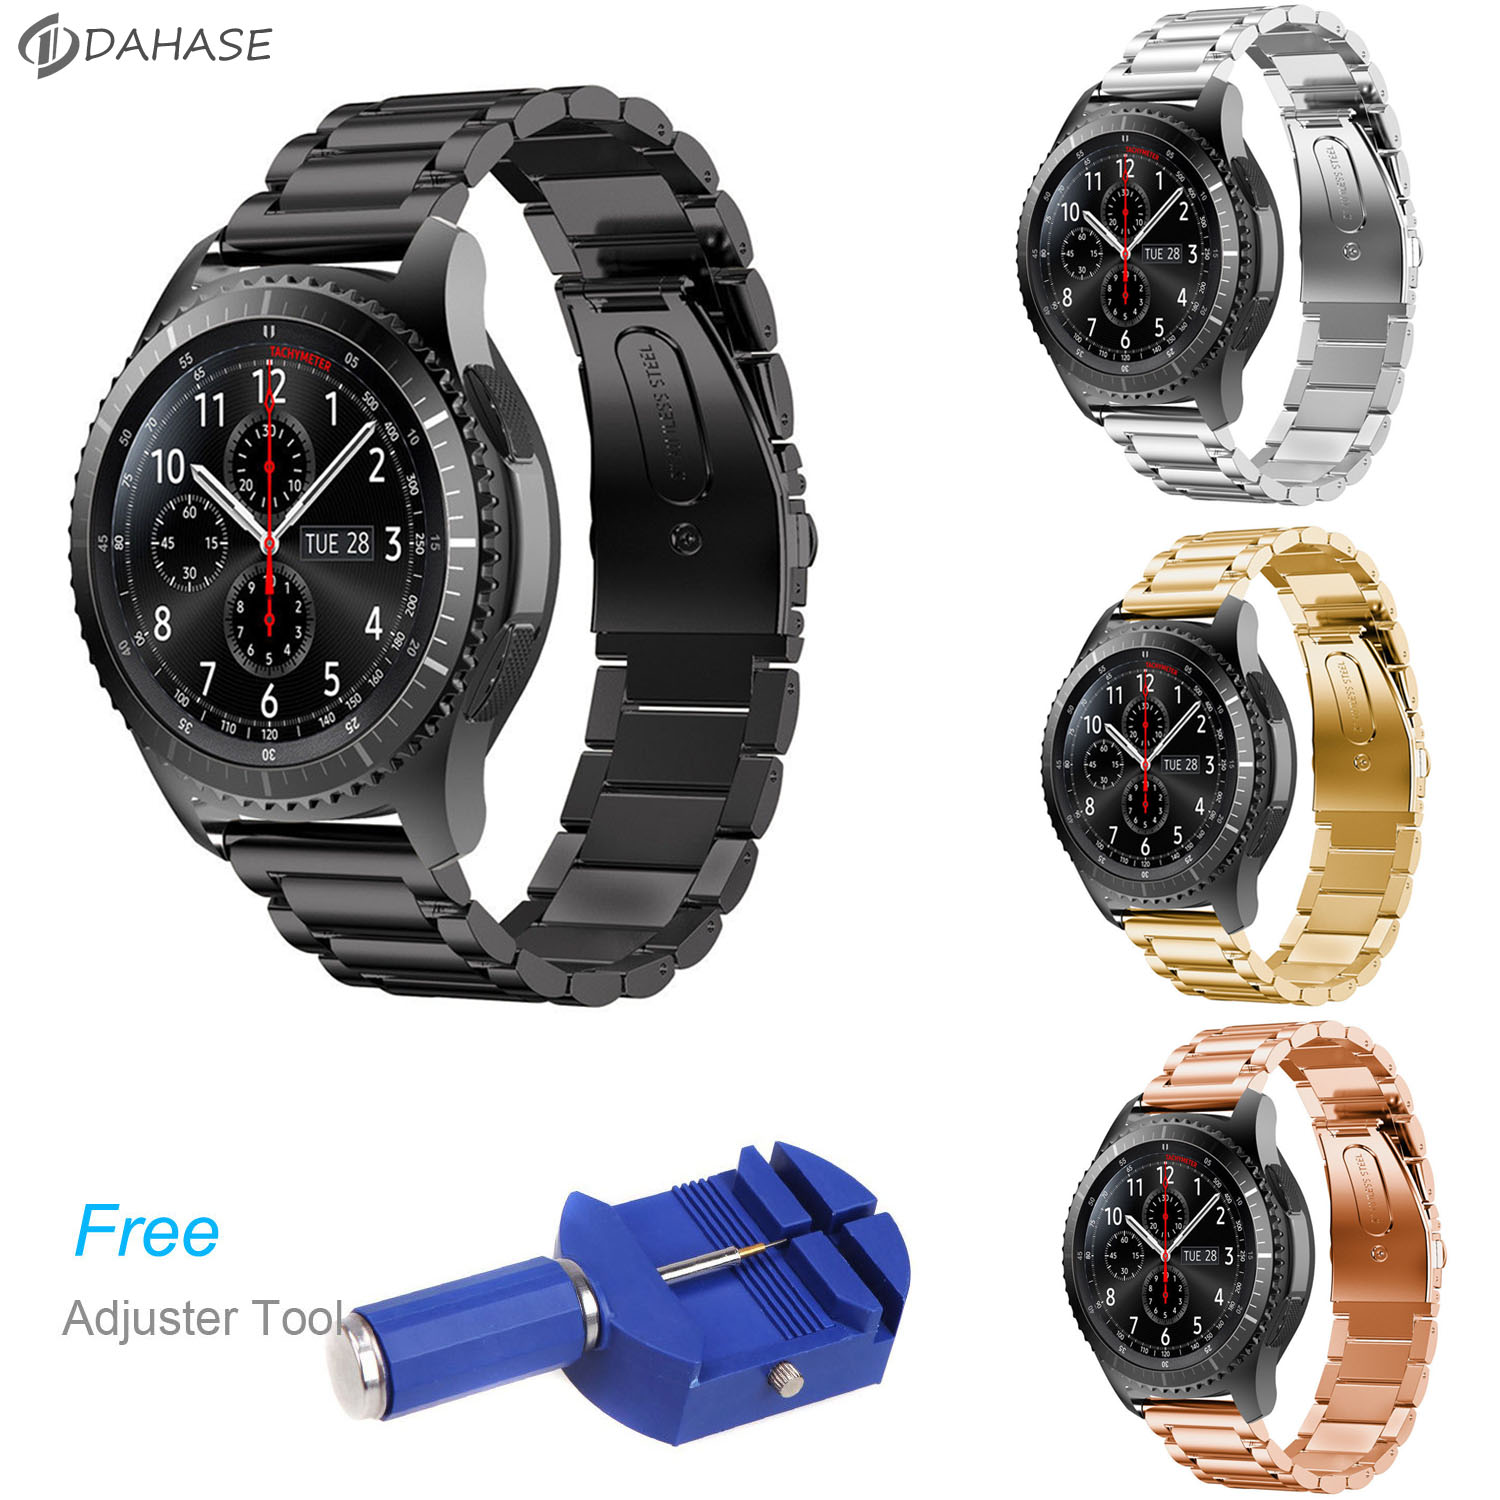 DAHASE Stainless Steel Watch Band for Samsung Gear S3 Frontier Strap for Gear S3 Classic Smart Watch Bracelet with Adjust Tool crested sport silicone strap for samsung gear s3 classic frontier replacement rubber band watch strap for samsung gear s3